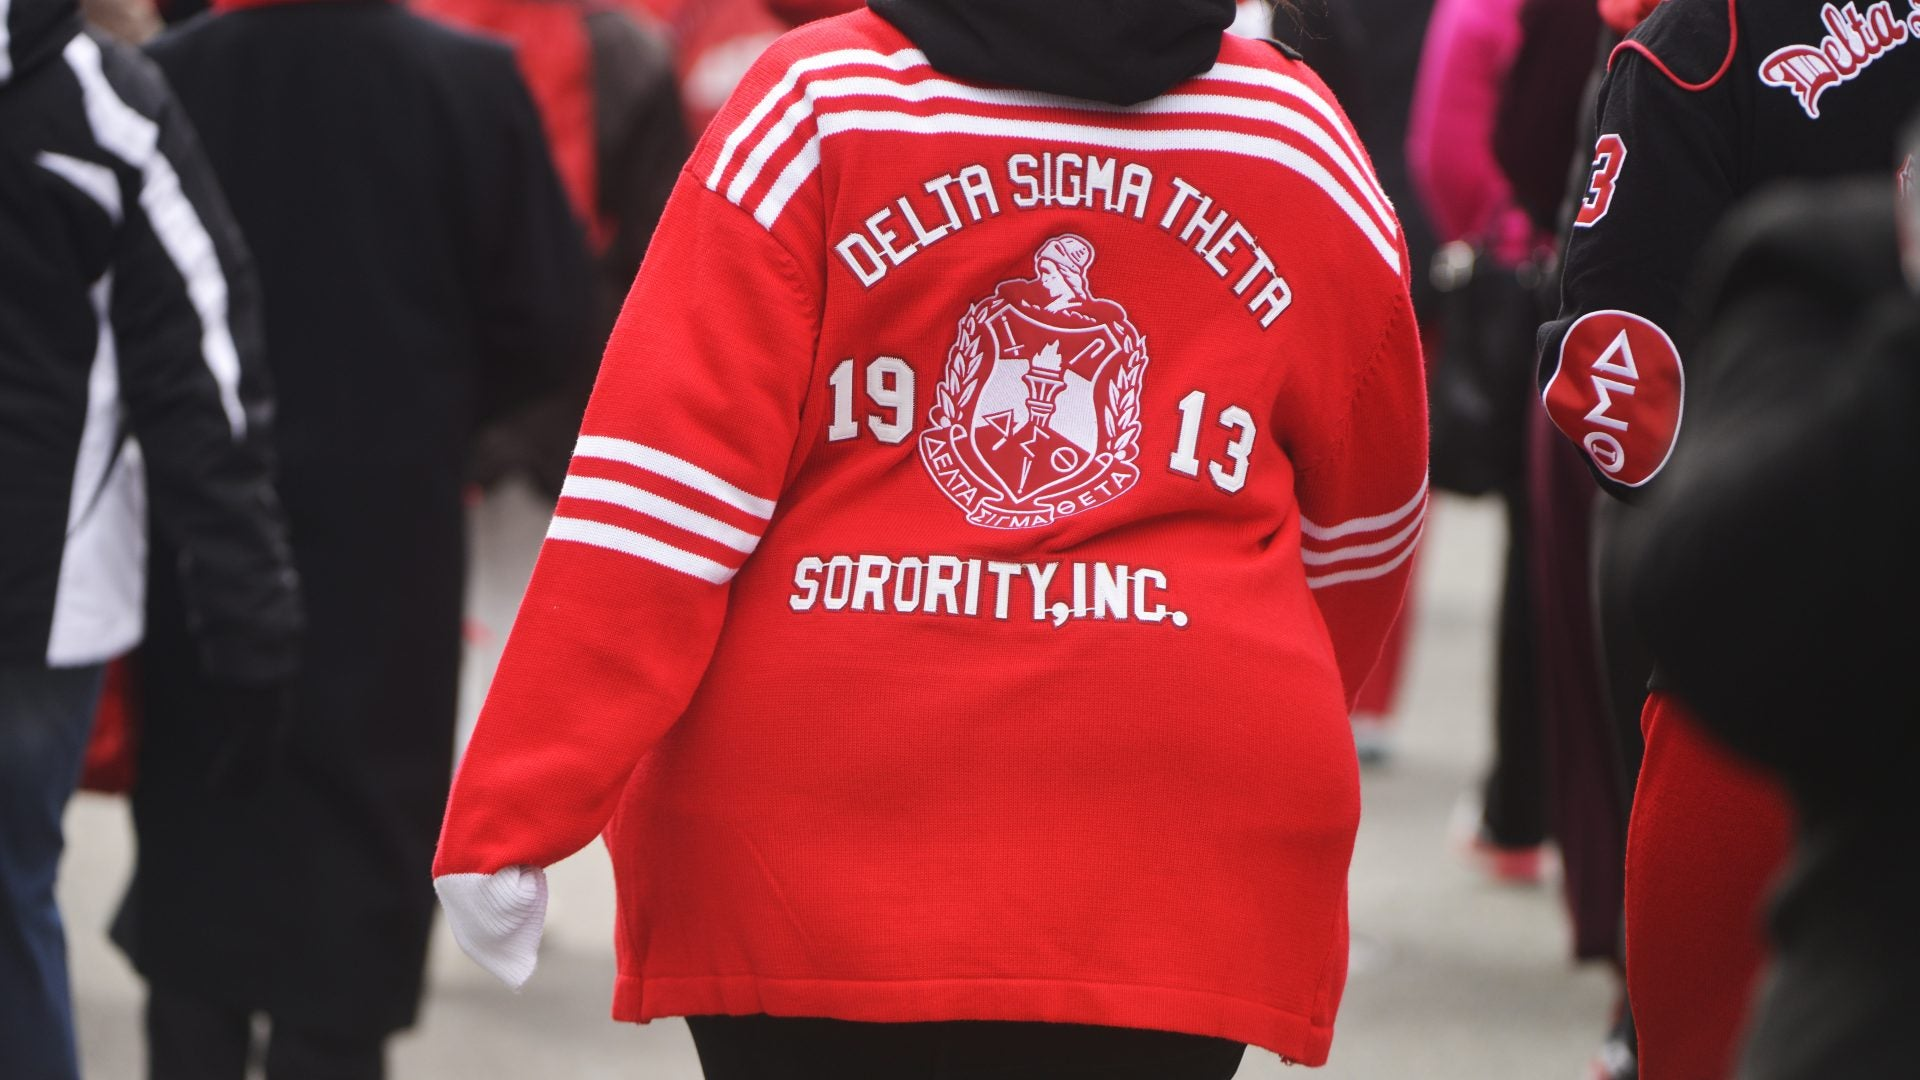 Calling All Divas of Delta Sigma Theta Sorority! Shop These Items To Celebrate Founder's Day!